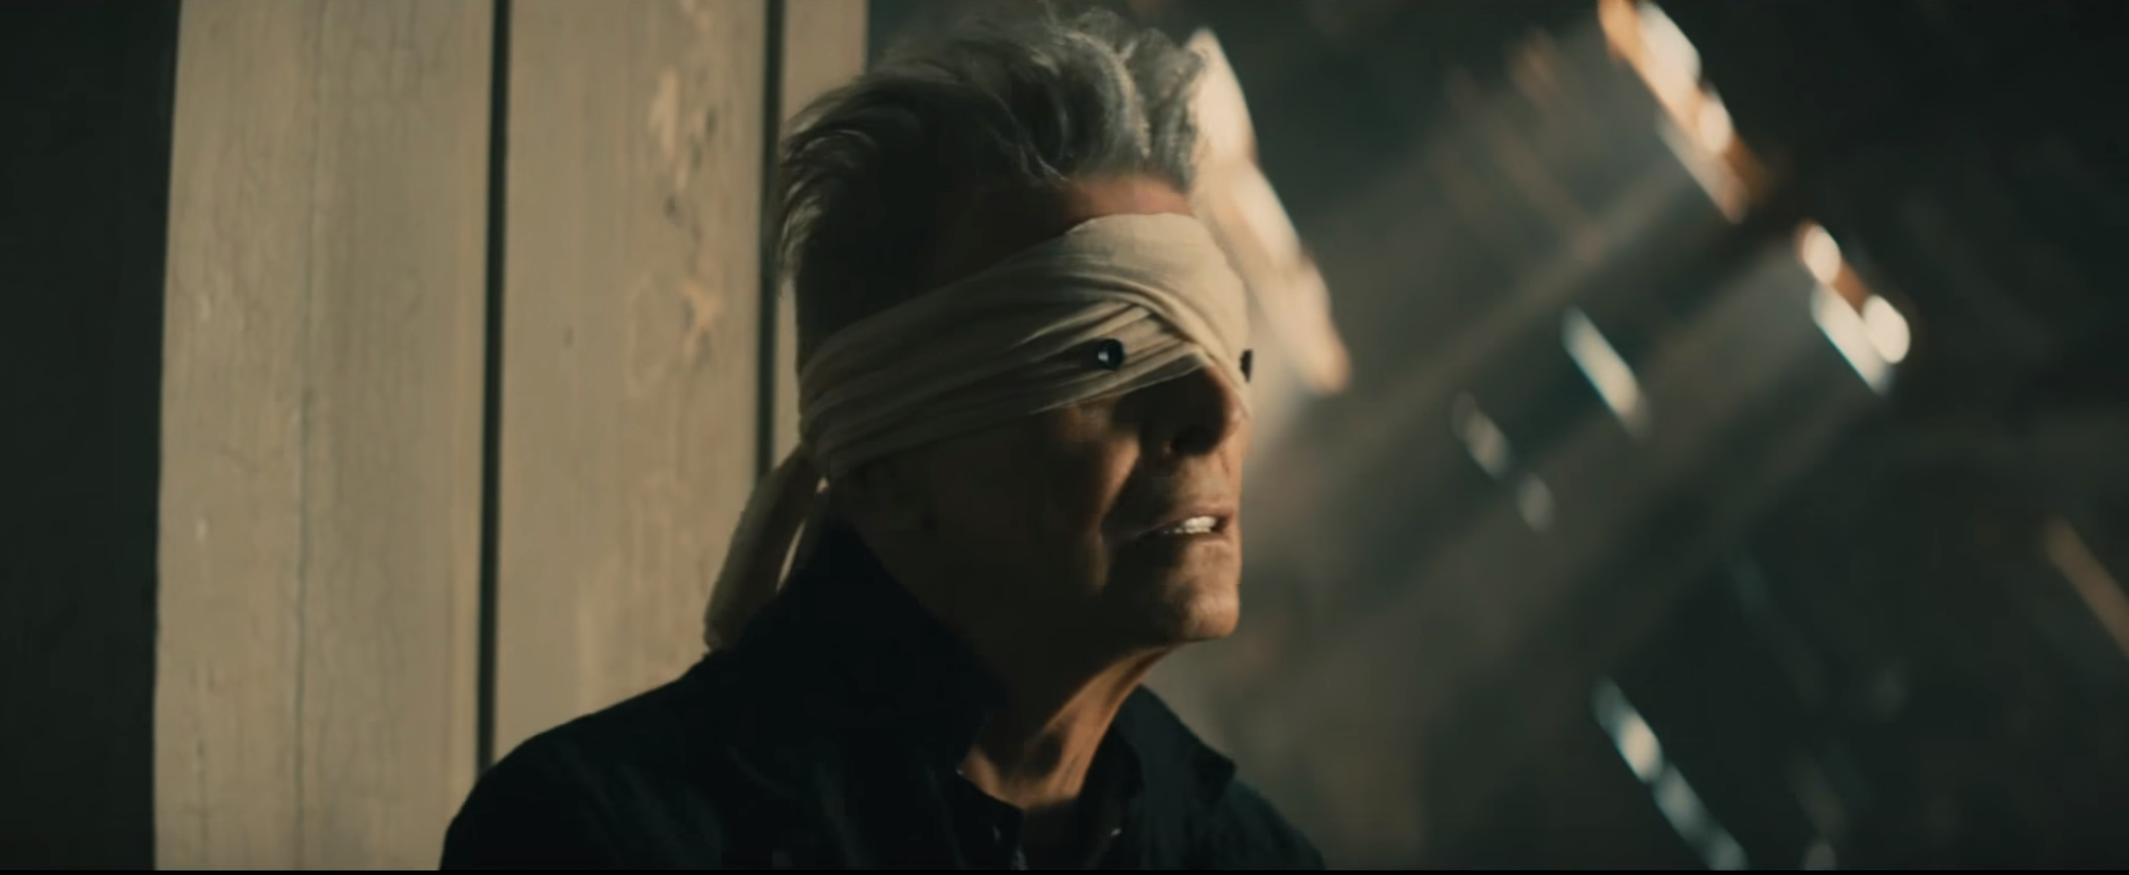 David Bowie´s 10 minute Video For Black Star by Johan Renck Is Here!